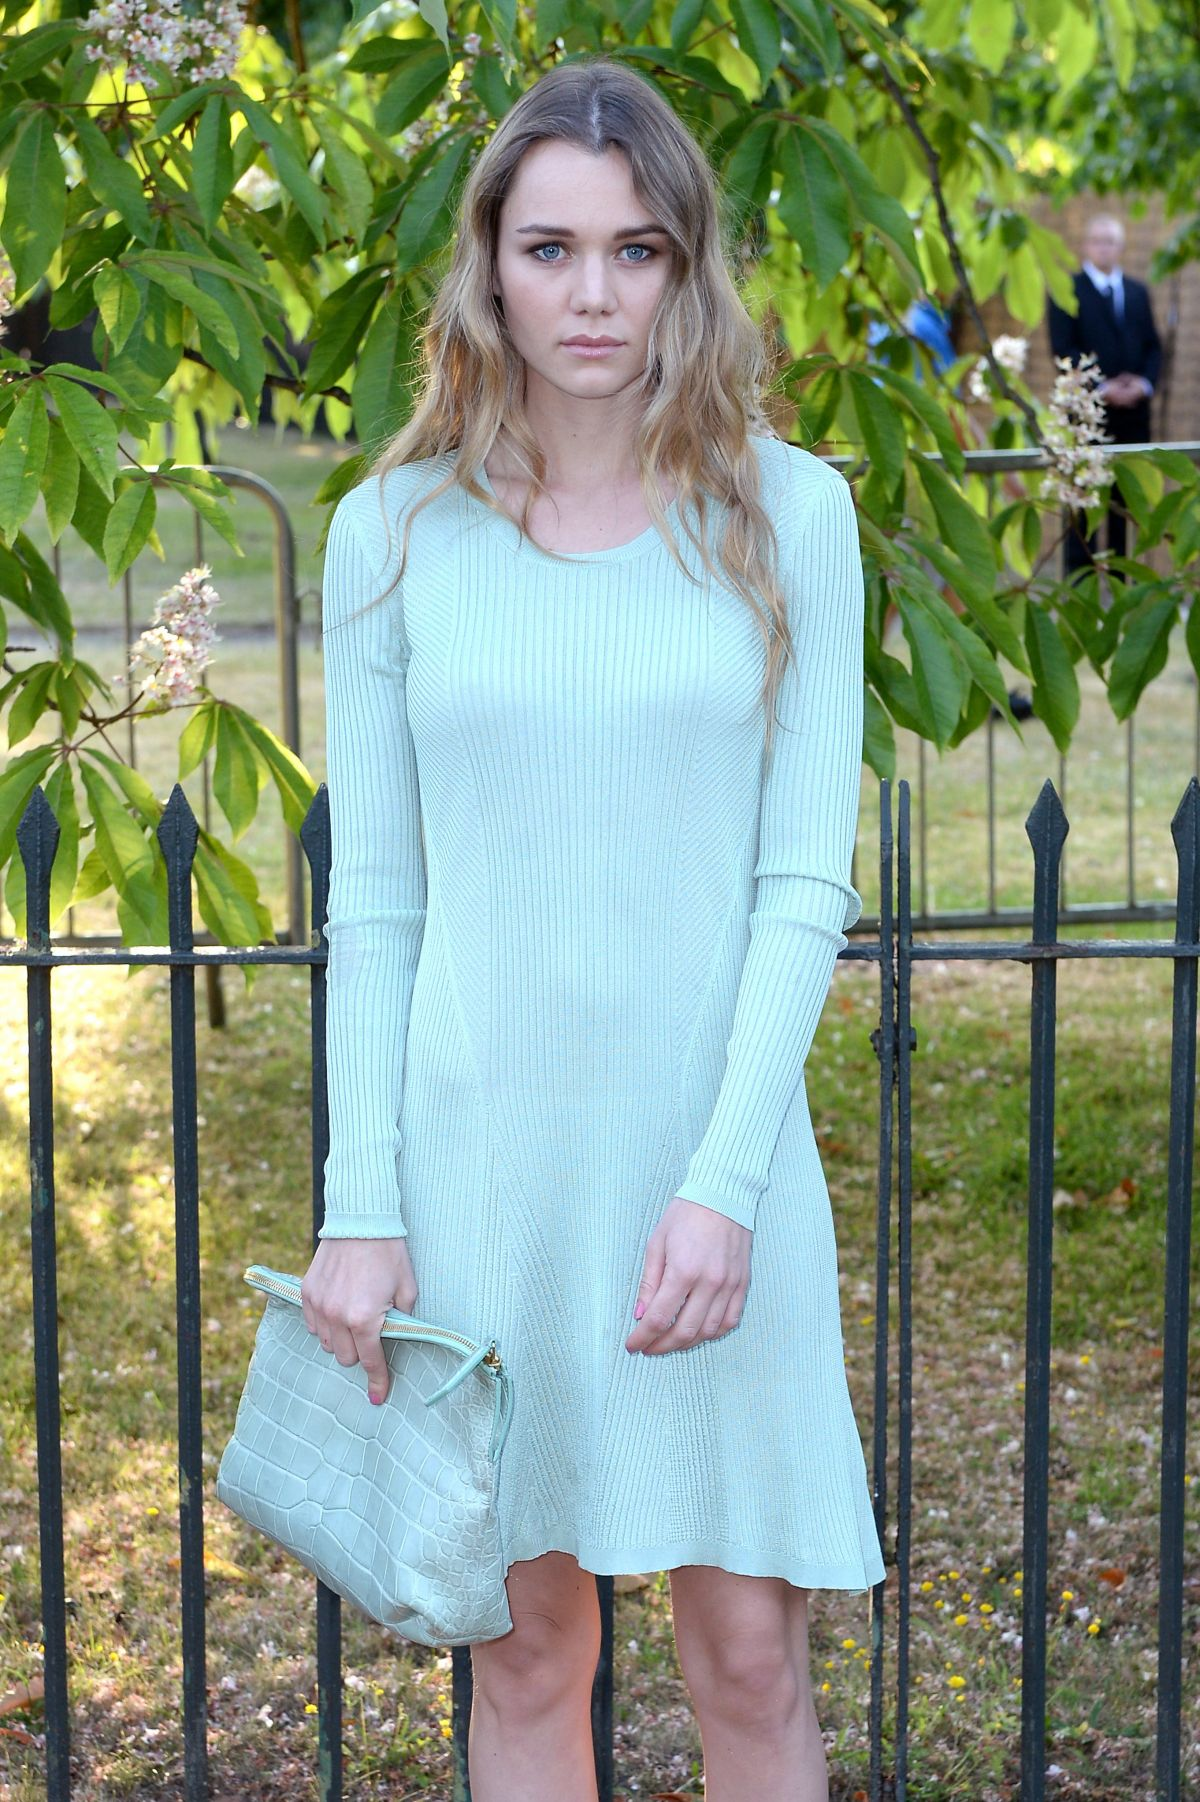 IMOGEN WATERHOUSE at Serpentine Gallery Summer Party in London